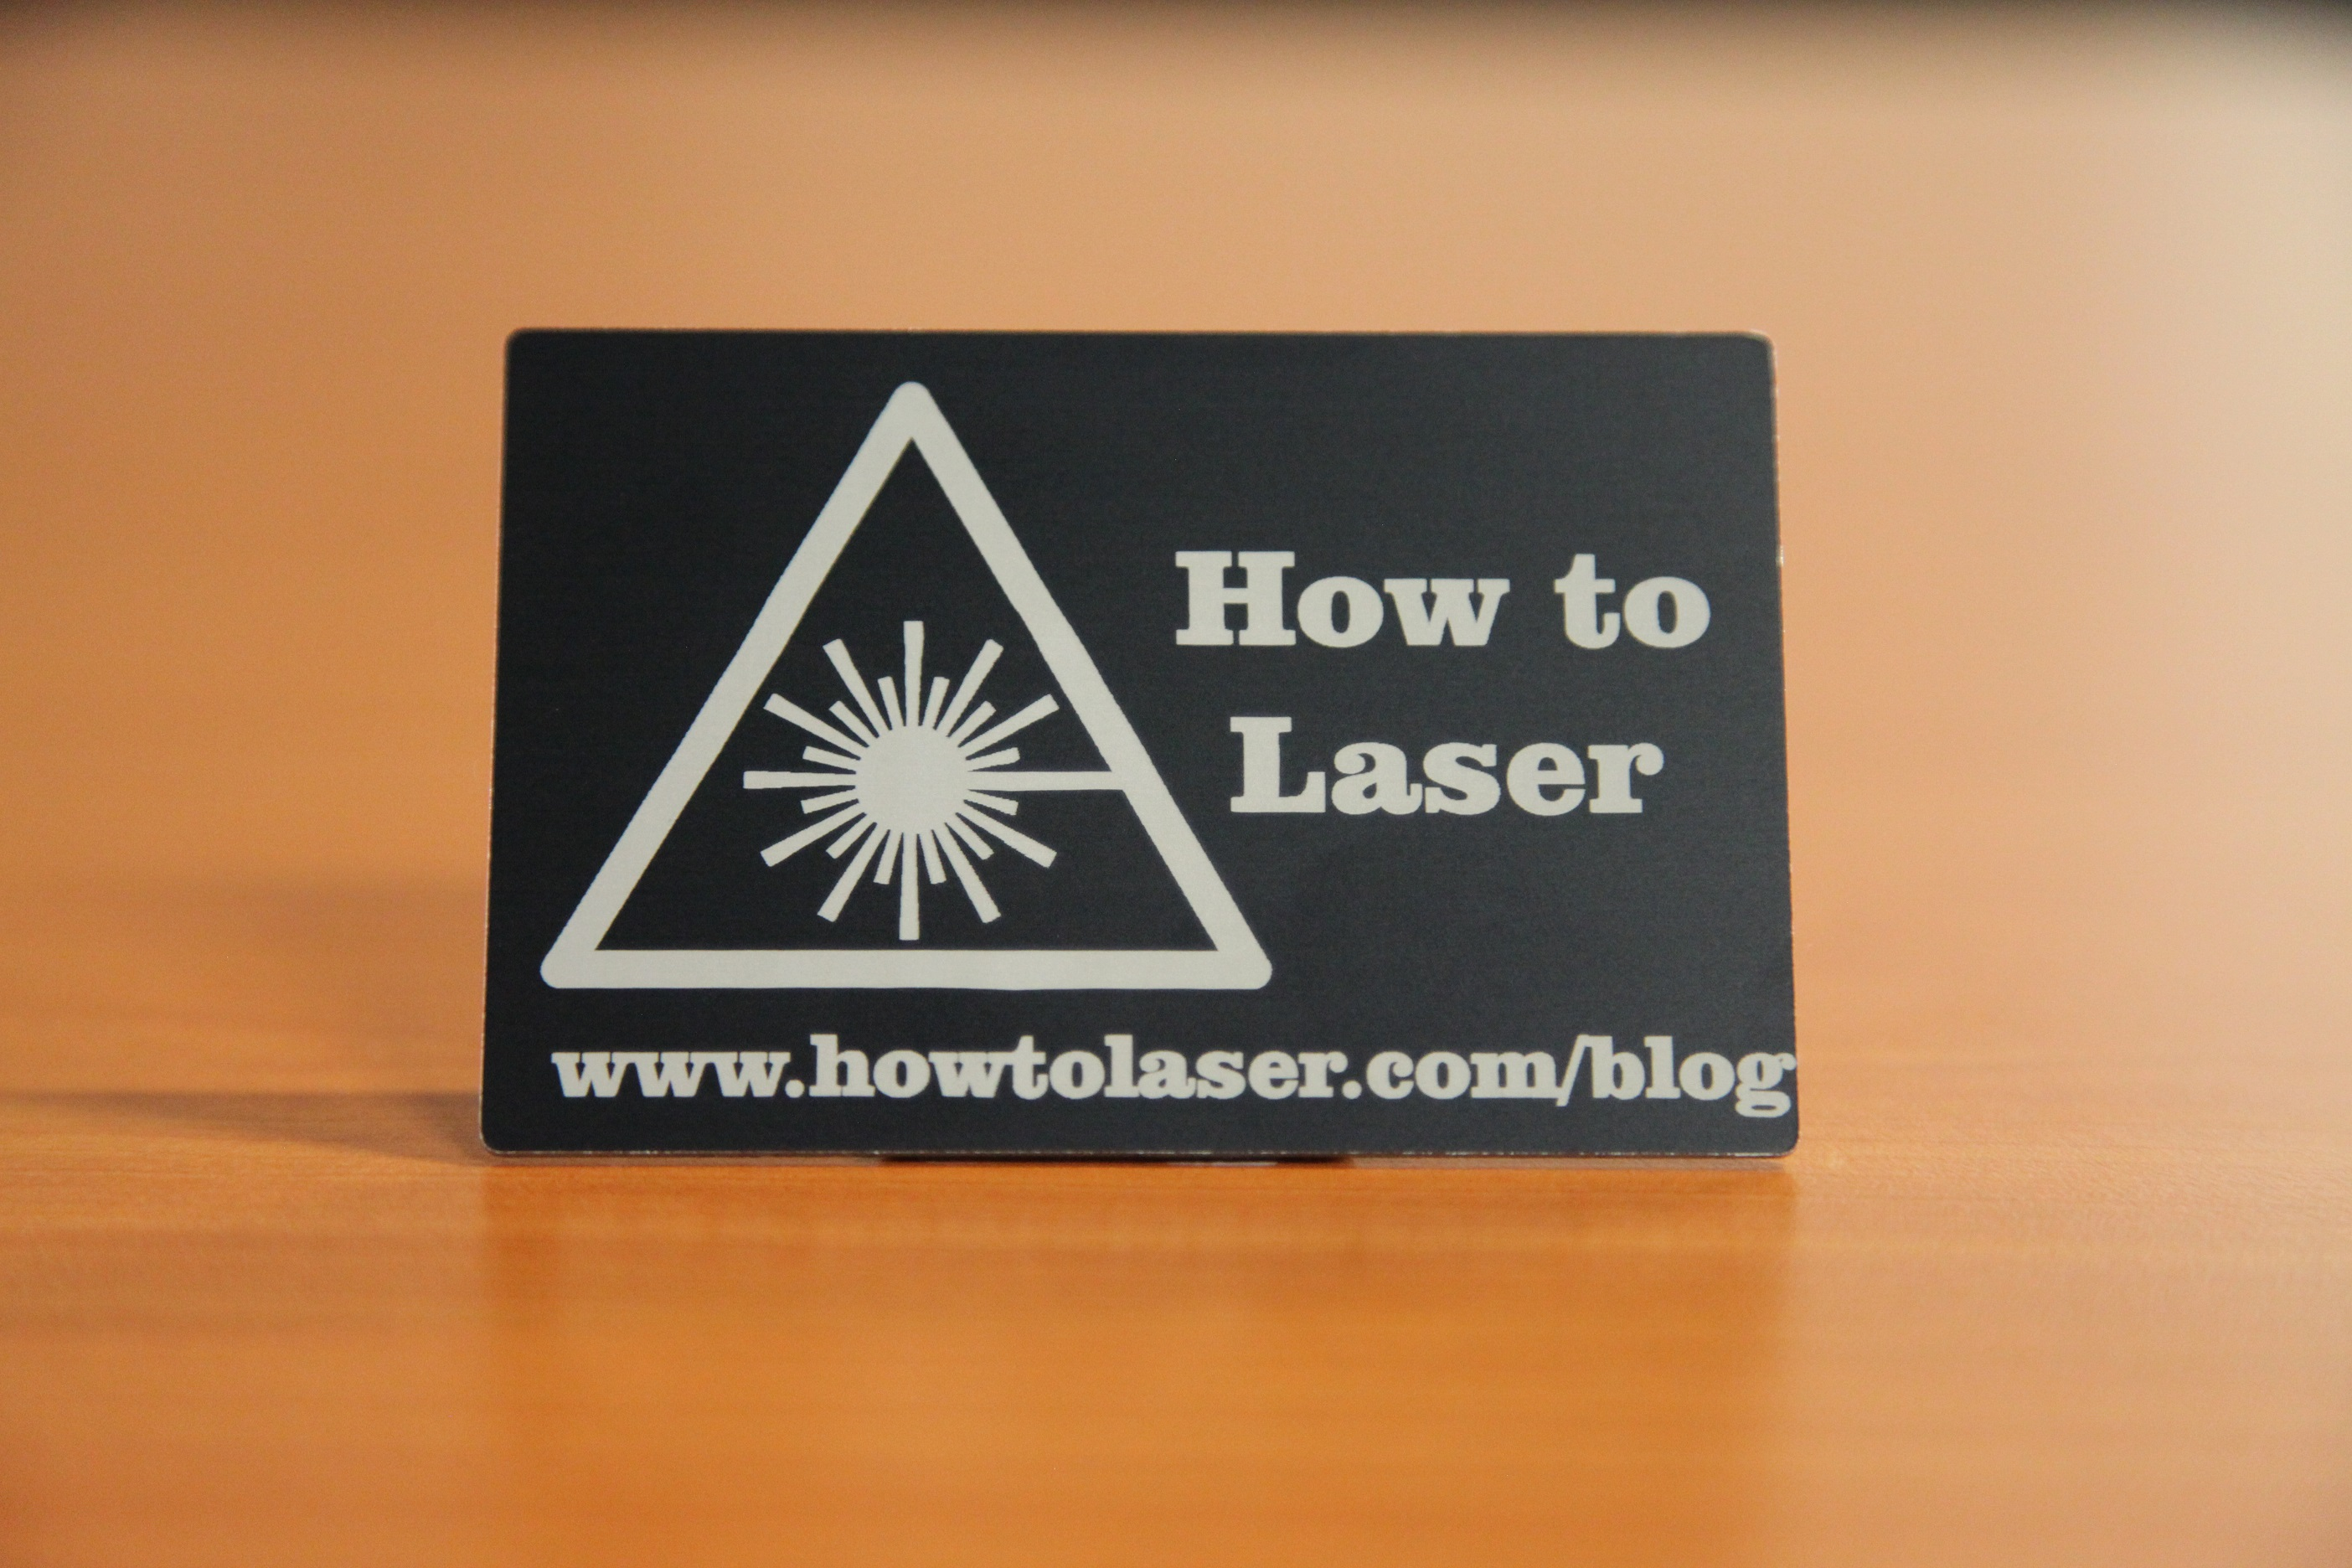 Laser Engraving Anodized Aluminium - The right way